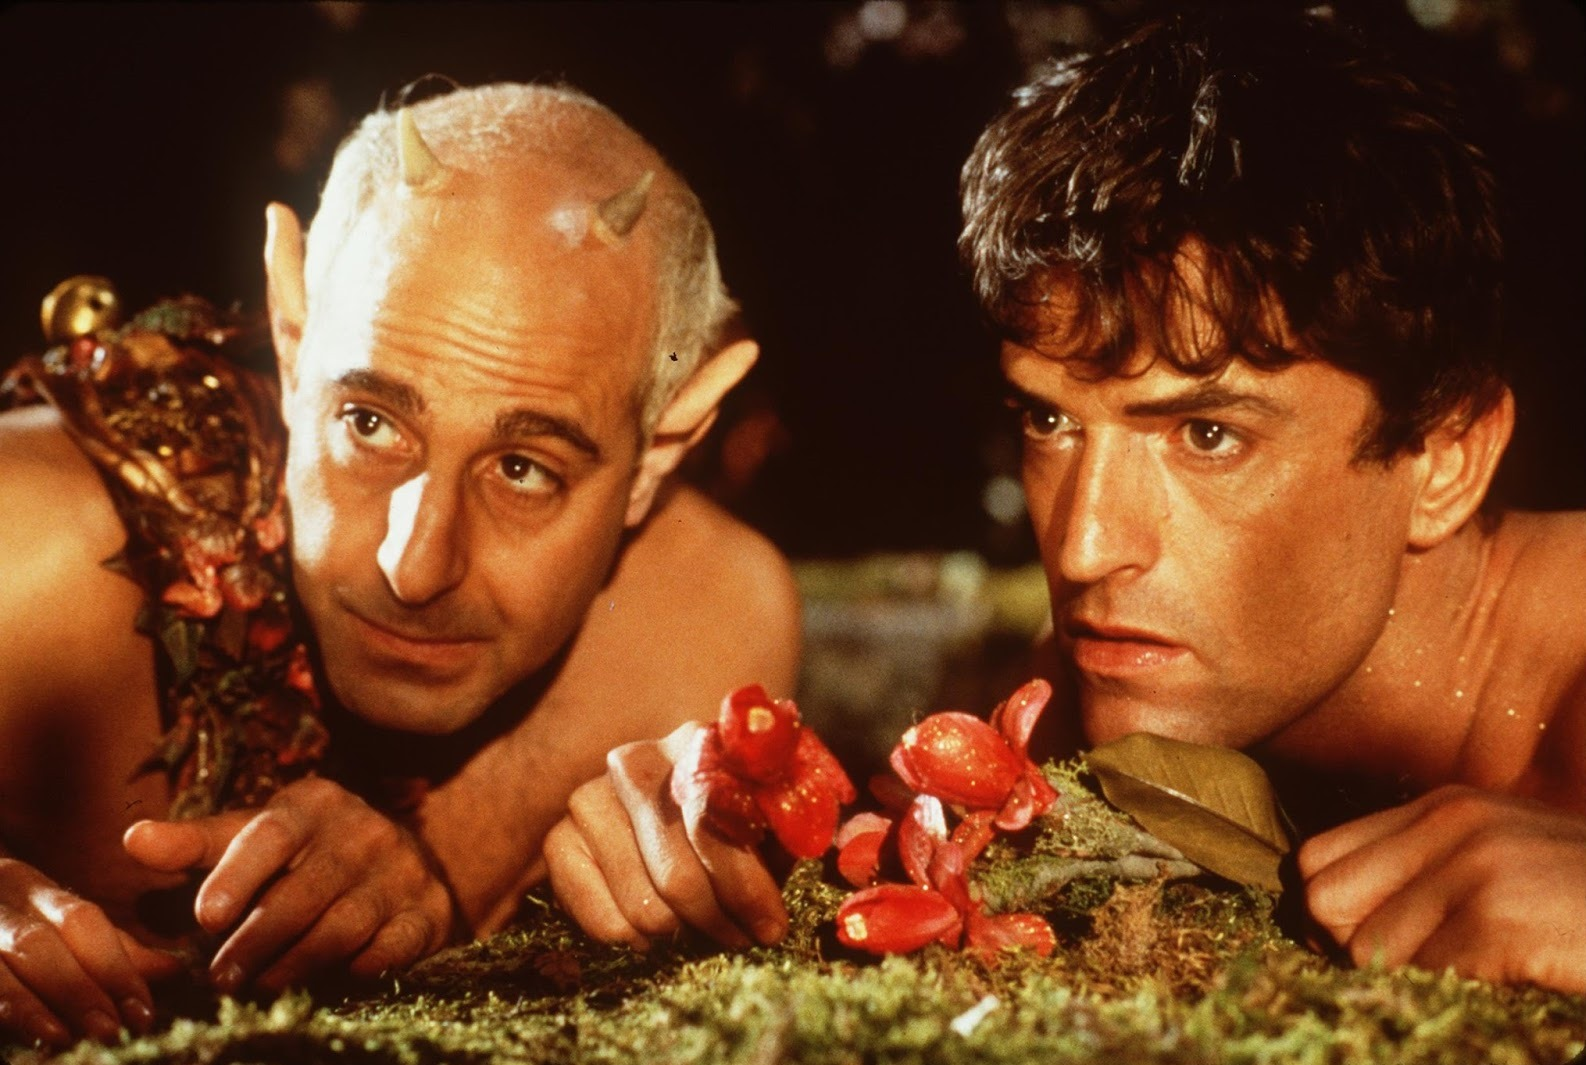 King Oberon (Rupert Everett) and his knave Puck (Stanley Tucci) in A Midsummer Night's Dream (1999)